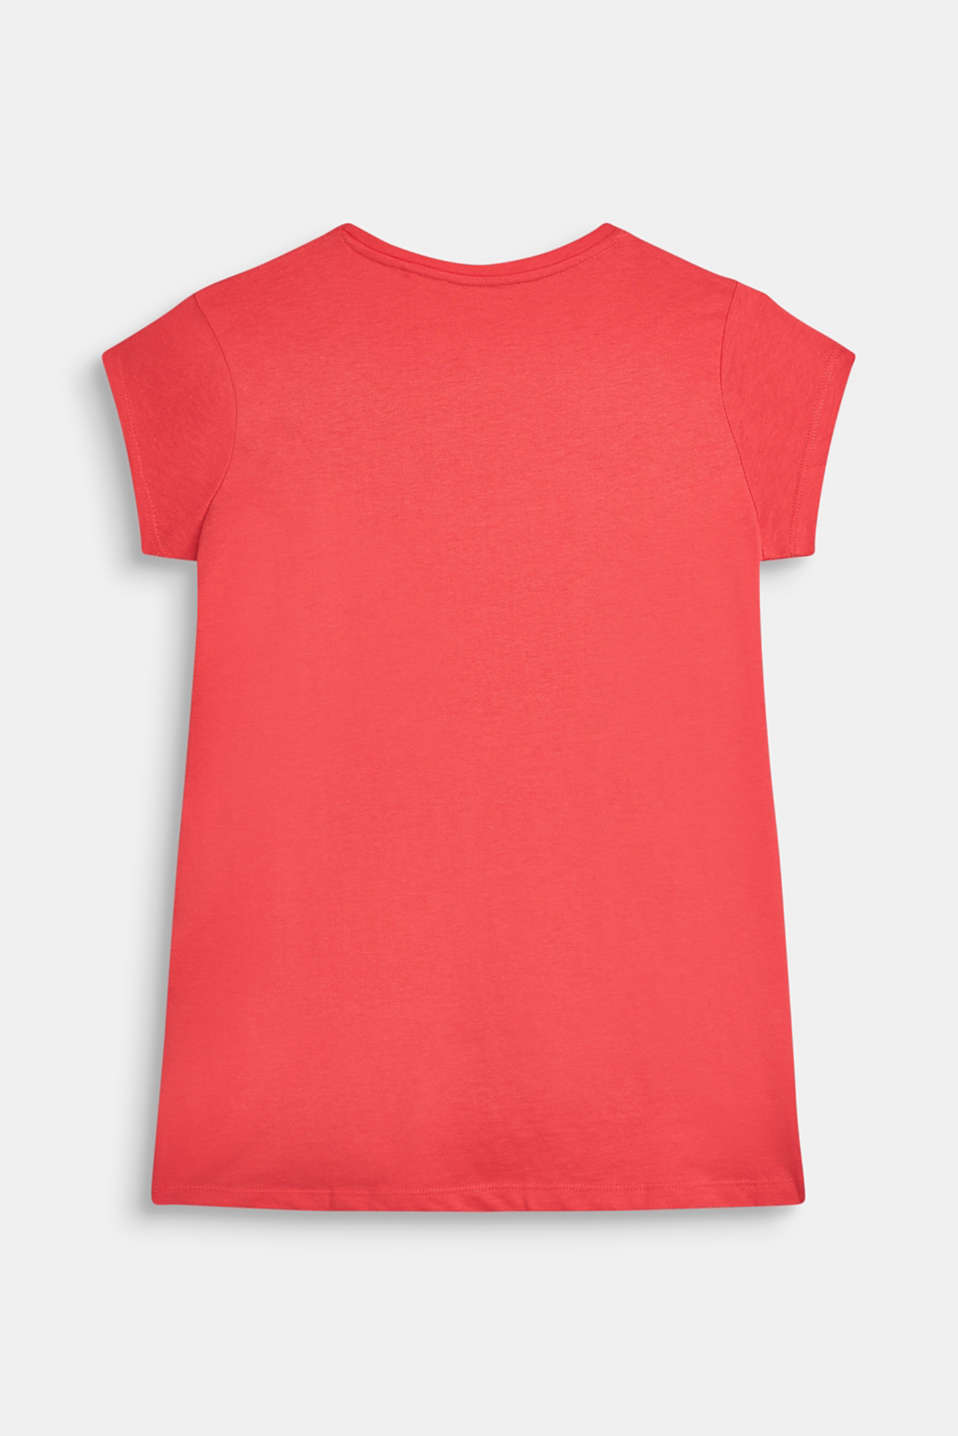 T-shirt with a statement print, 100% cotton, LCWATERMELON, detail image number 1